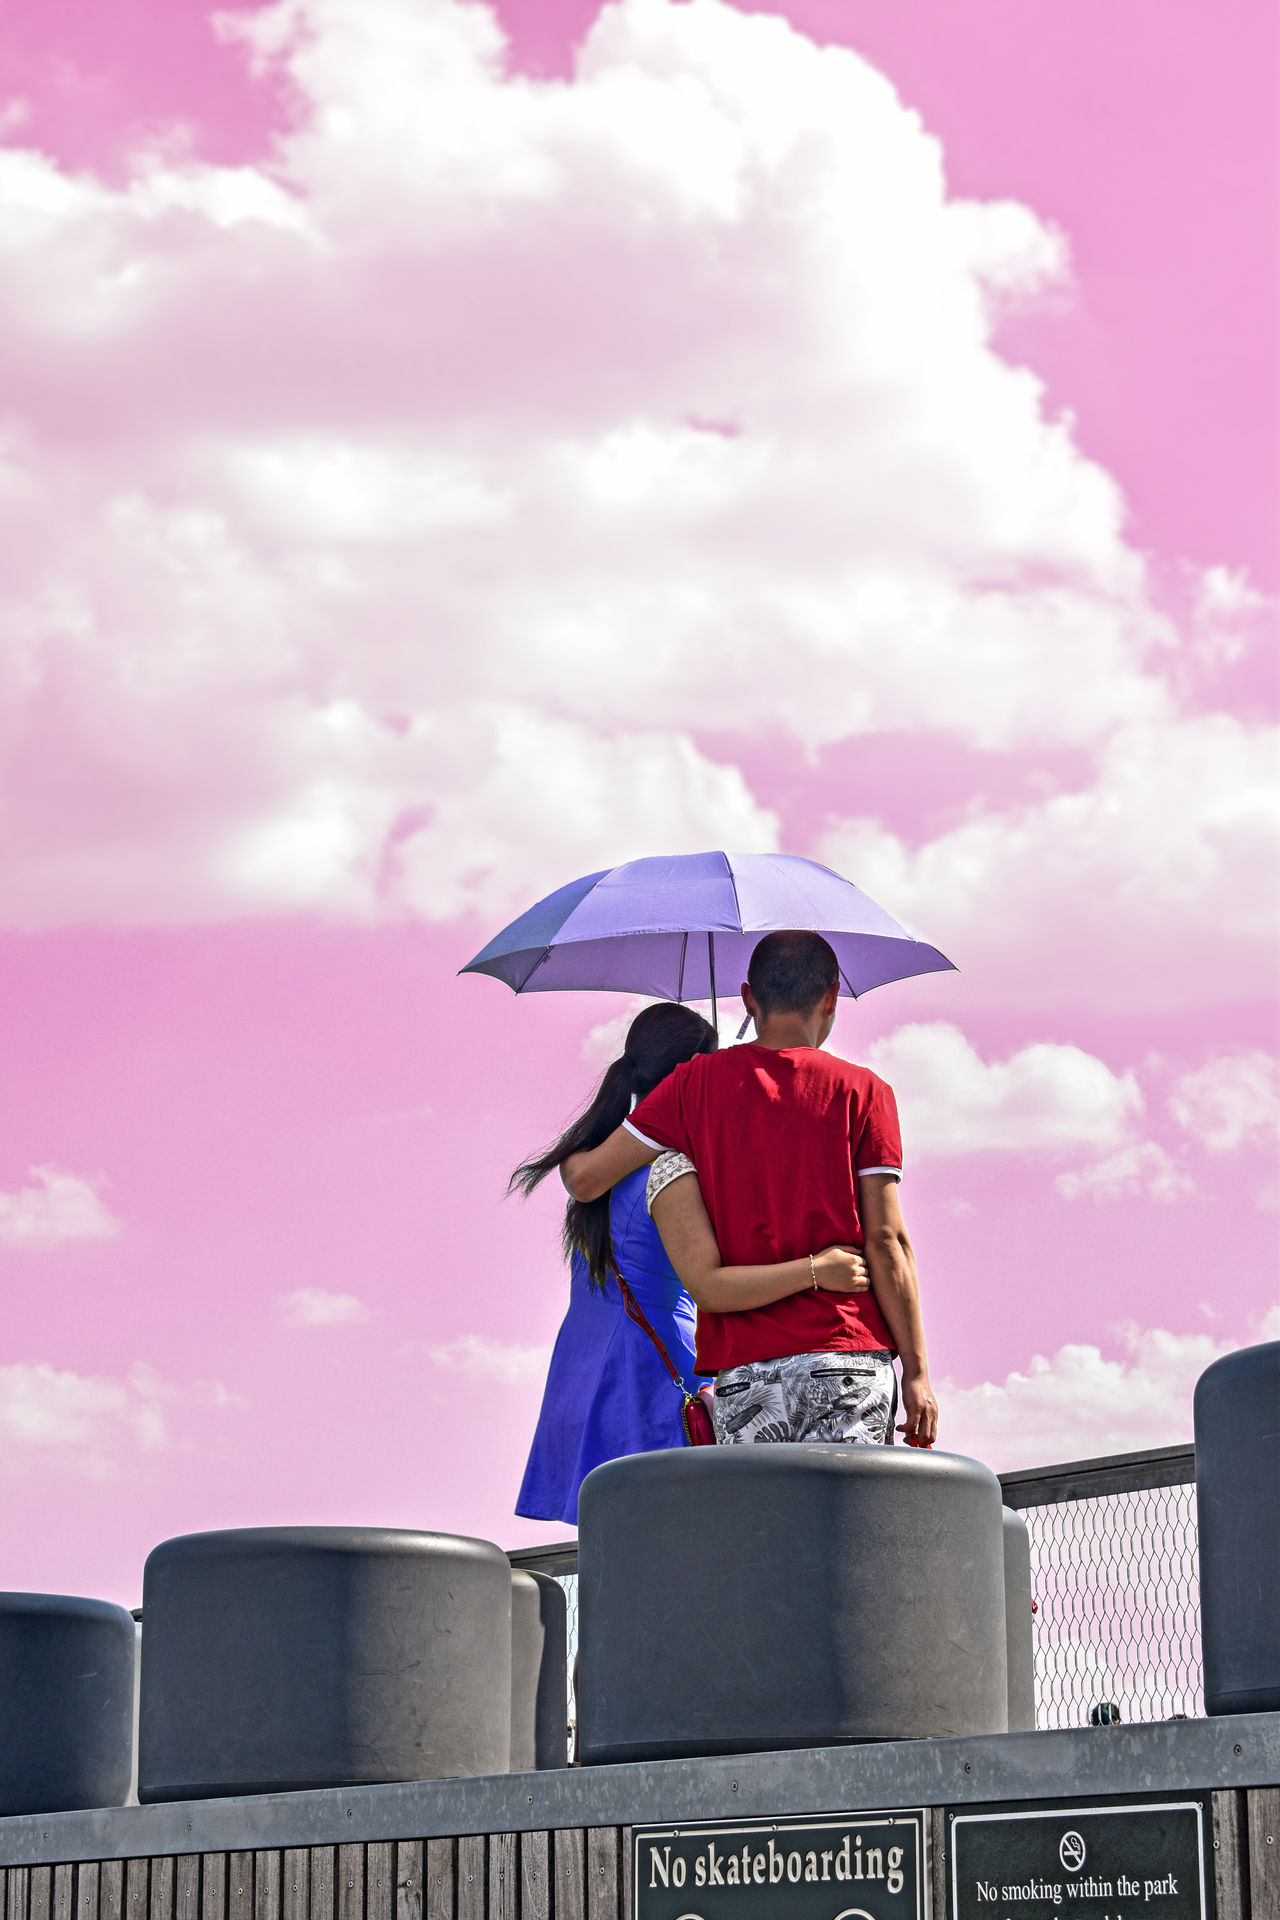 Couple Couples❤❤❤ Love Pink Sky And Clouds Built Structure Cloud - Sky Color Colorful Sky Couple - Relationship Day Lifestyles Low Angle View Men One Person Outdoor Outdoor Photography Outdoors People Pink Color Protection Real People Sky Umbrella Young Adult